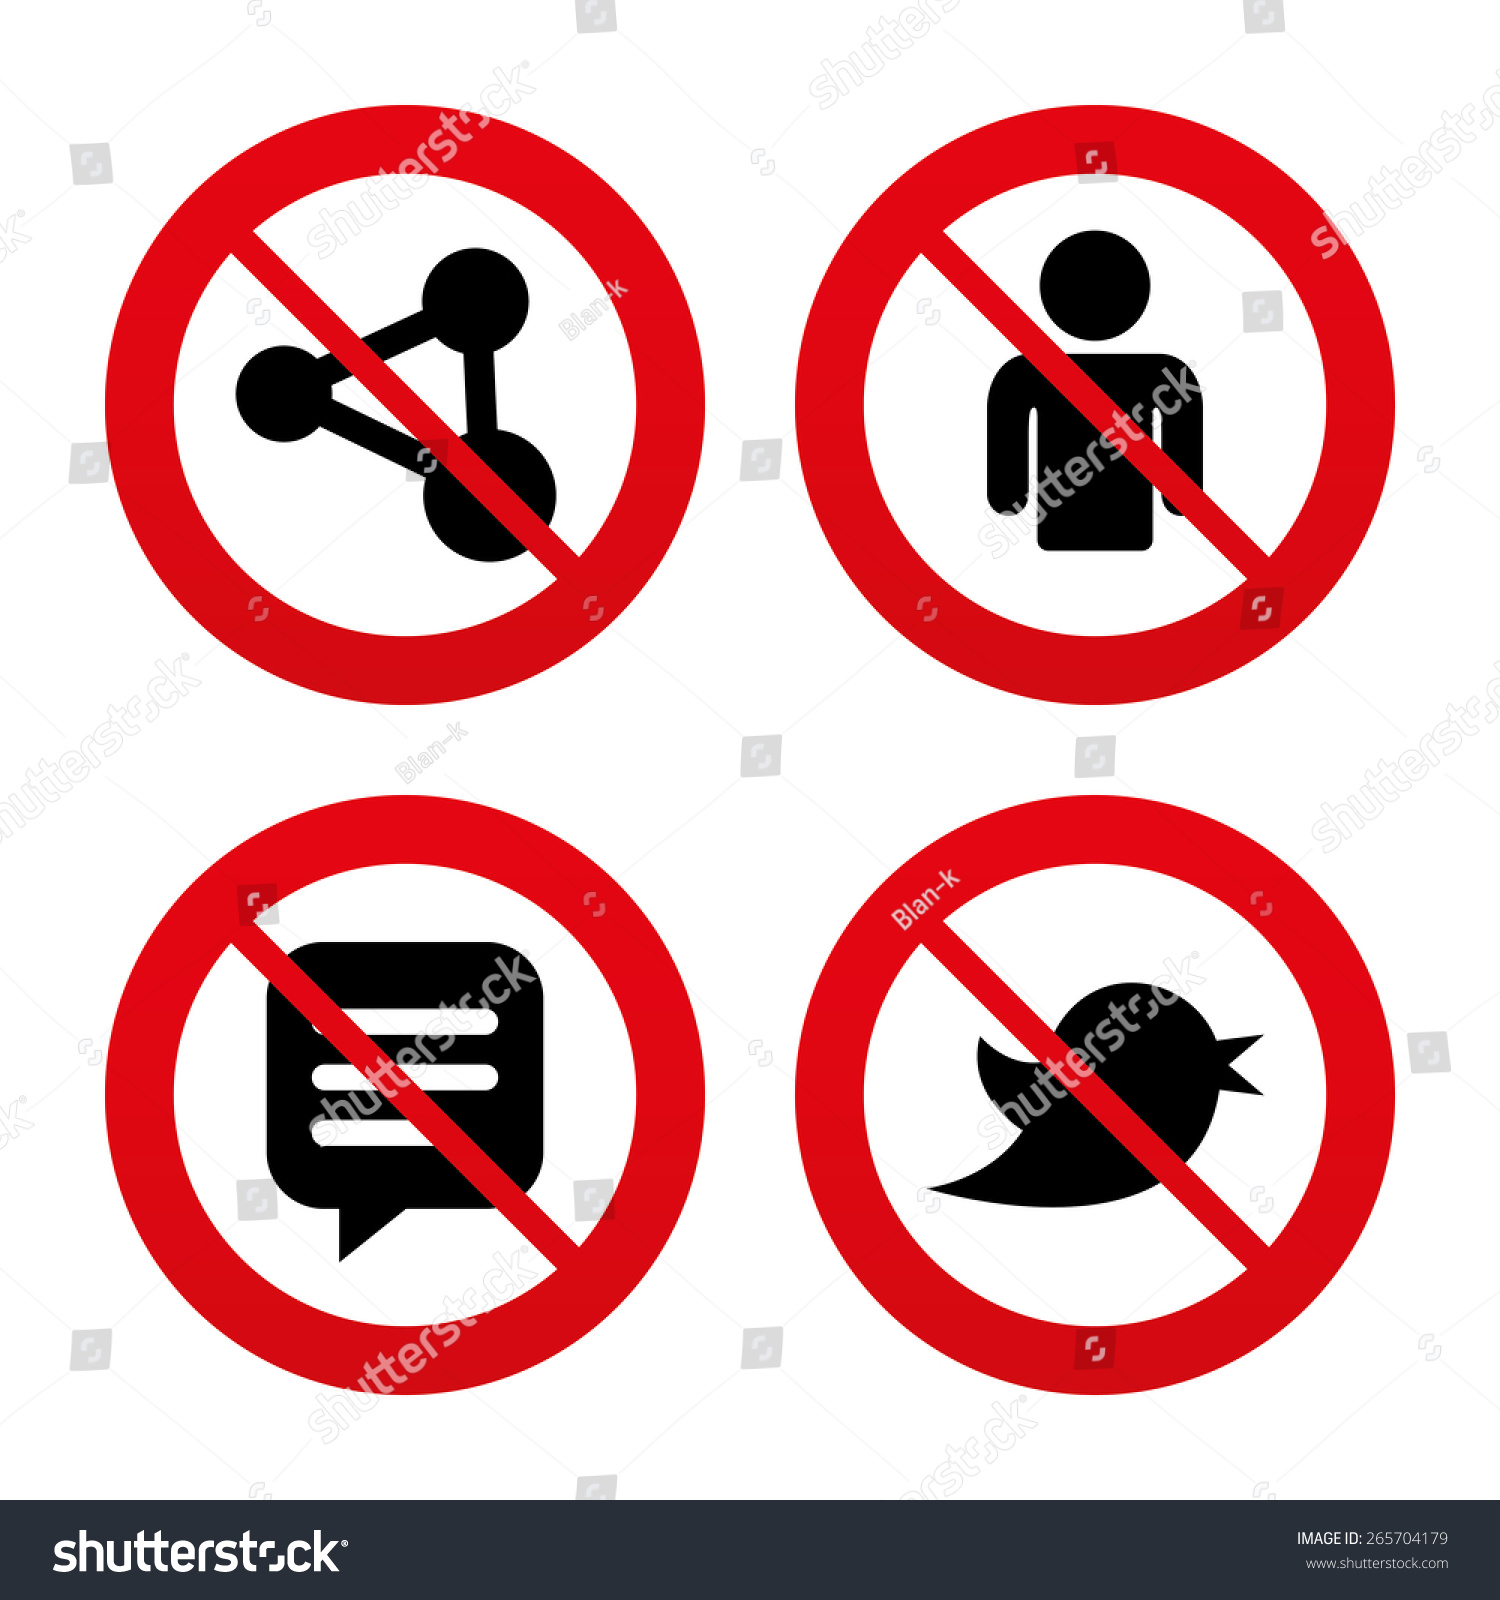 No Ban Stop Signs Human Person Stock Vector Royalty Free 265704179